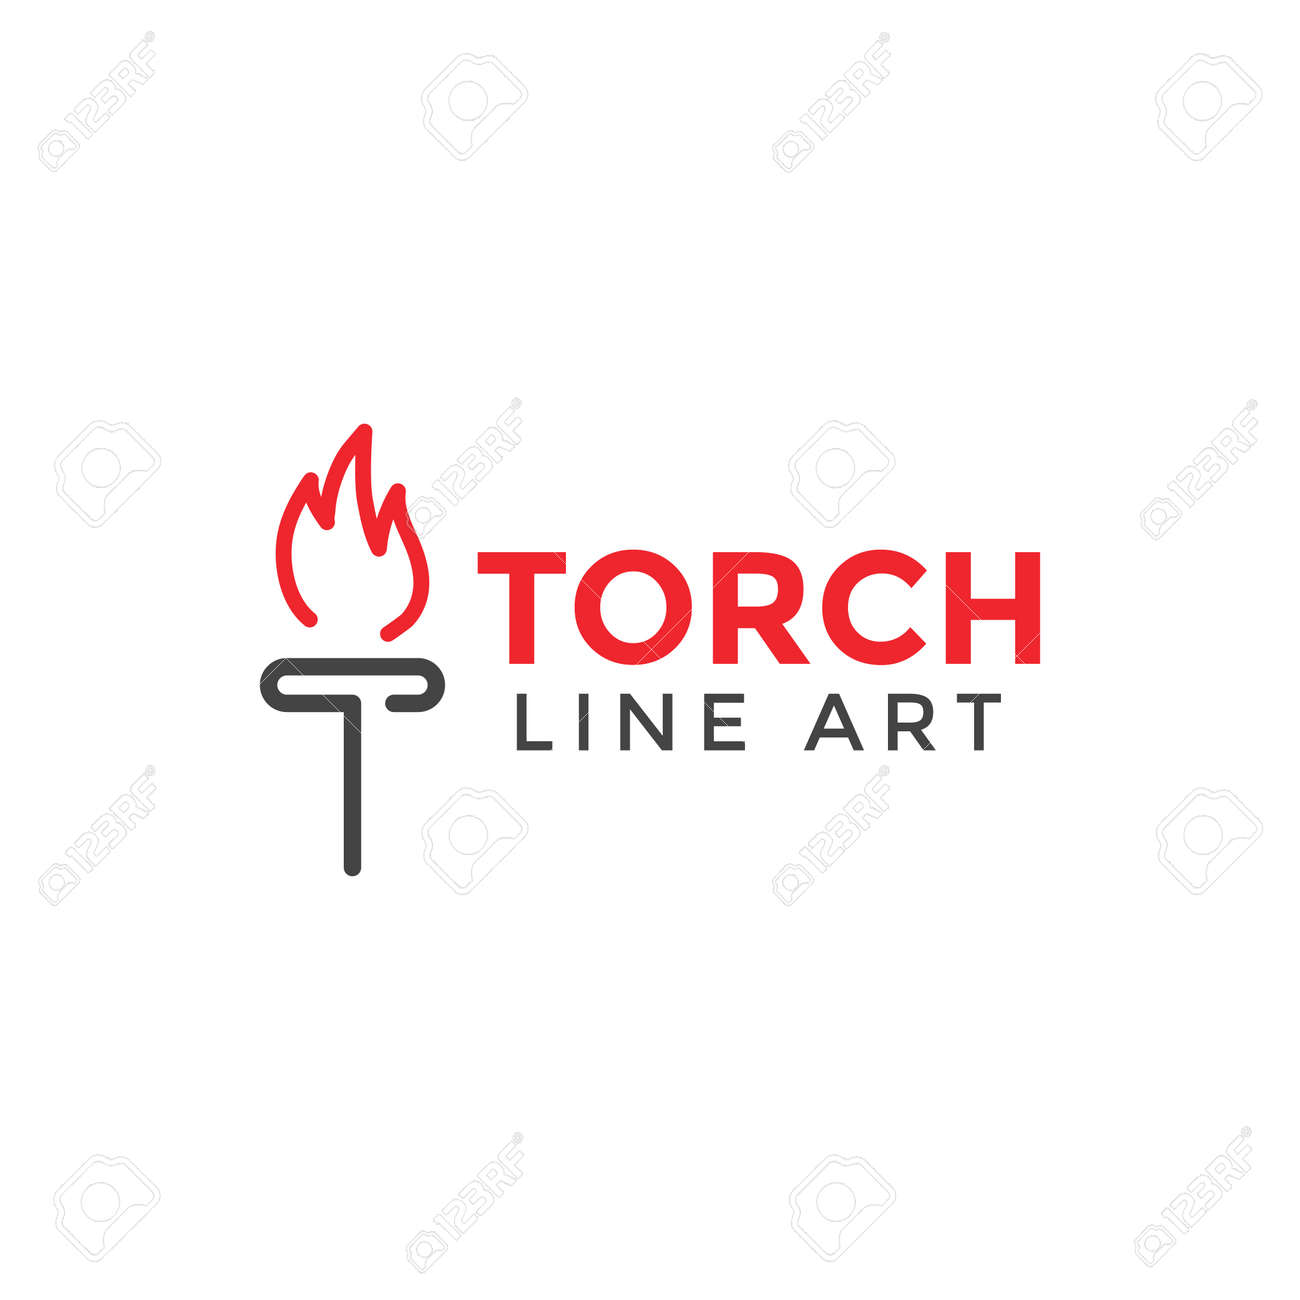 torch graphic design template